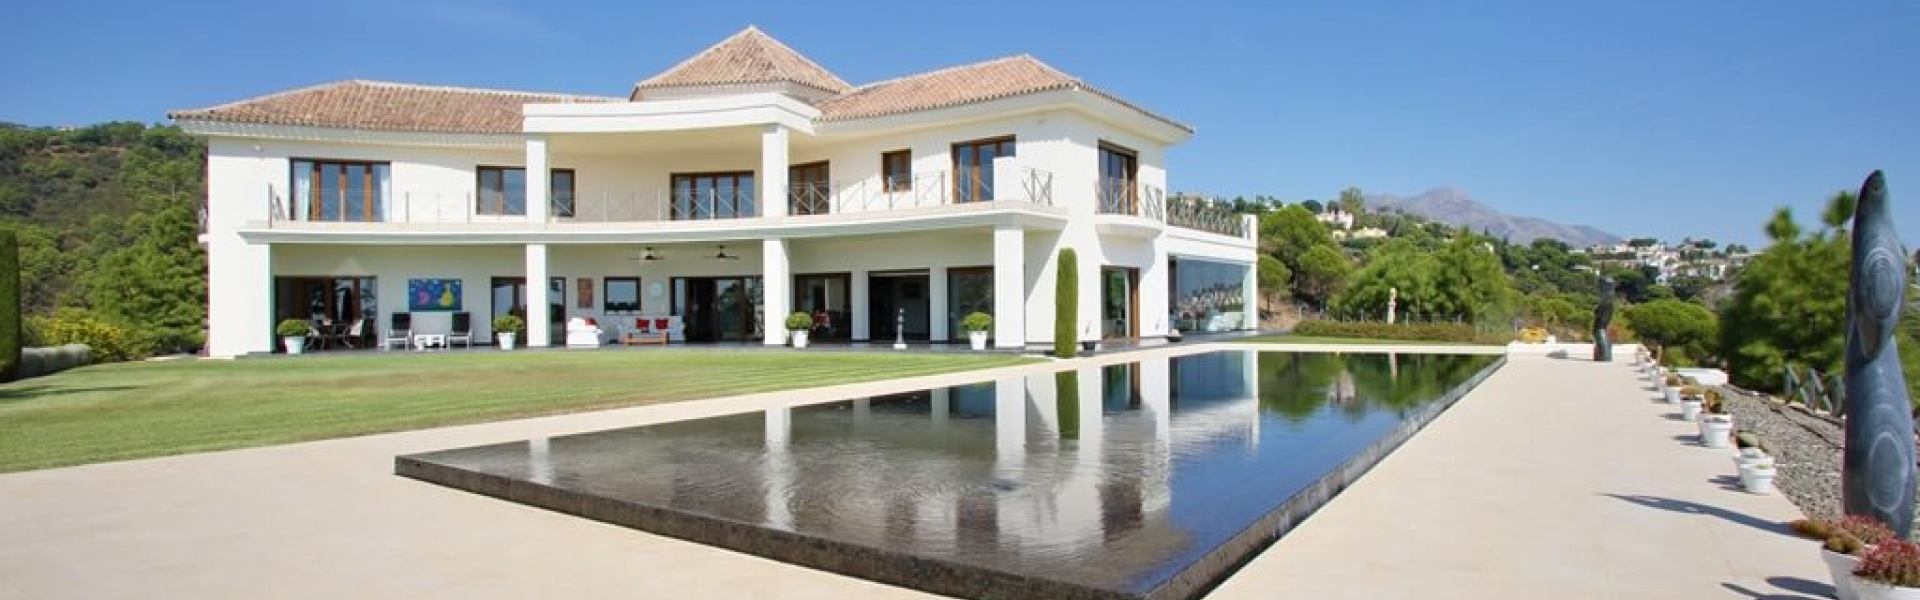 Villa  for sale at La Reserva de Alcuzcuz